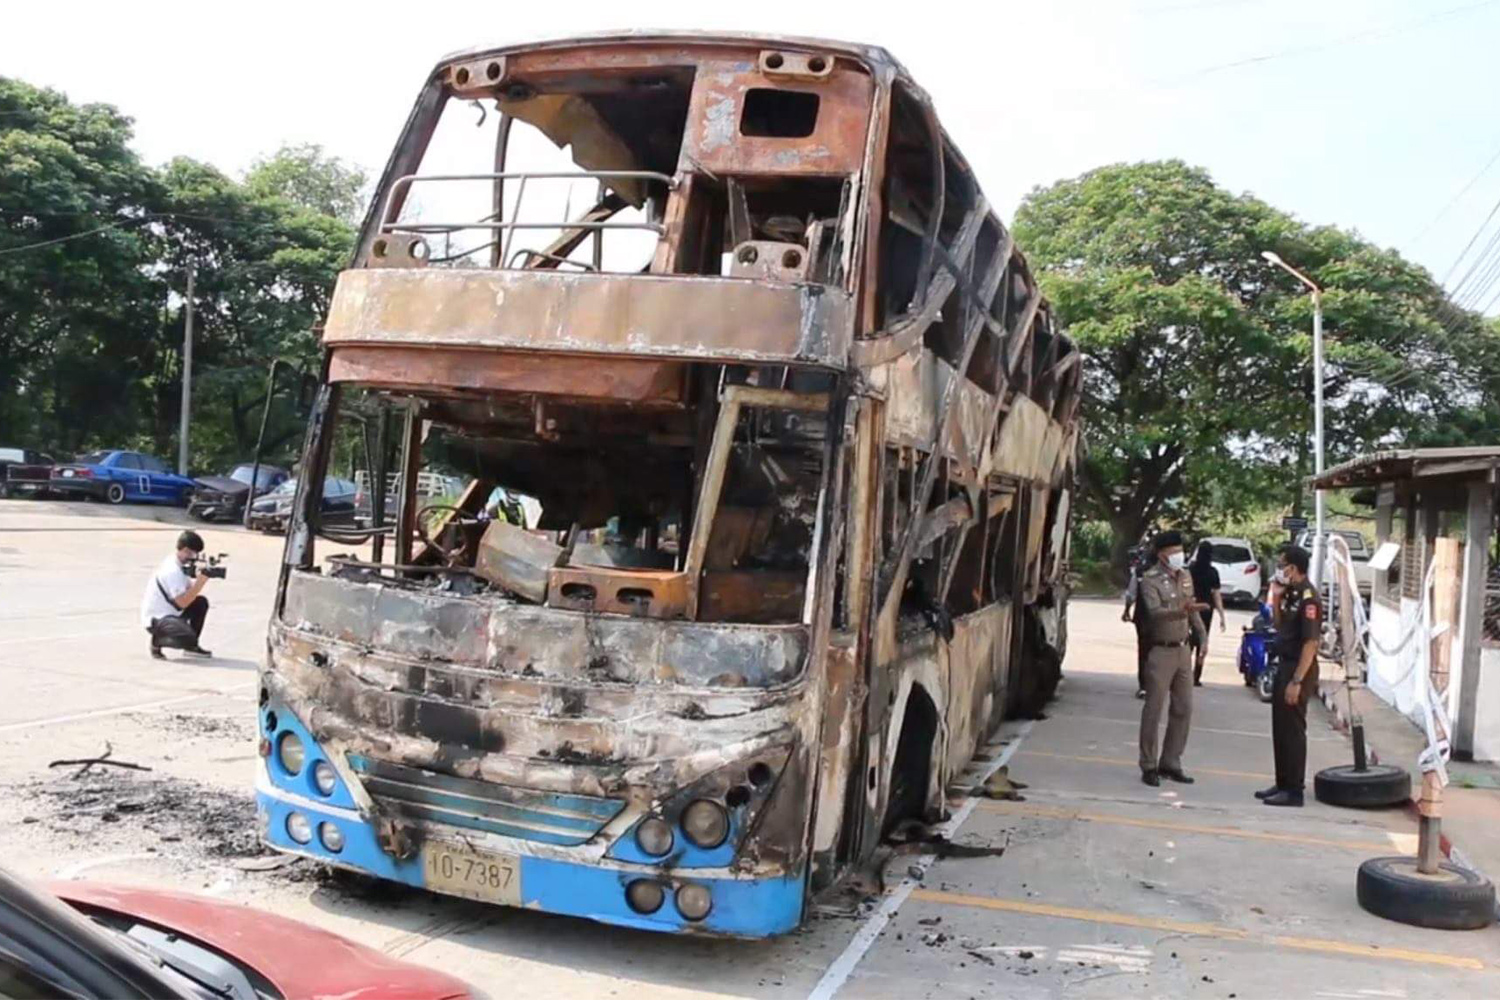 Driver of fatal-fire tour bus charged